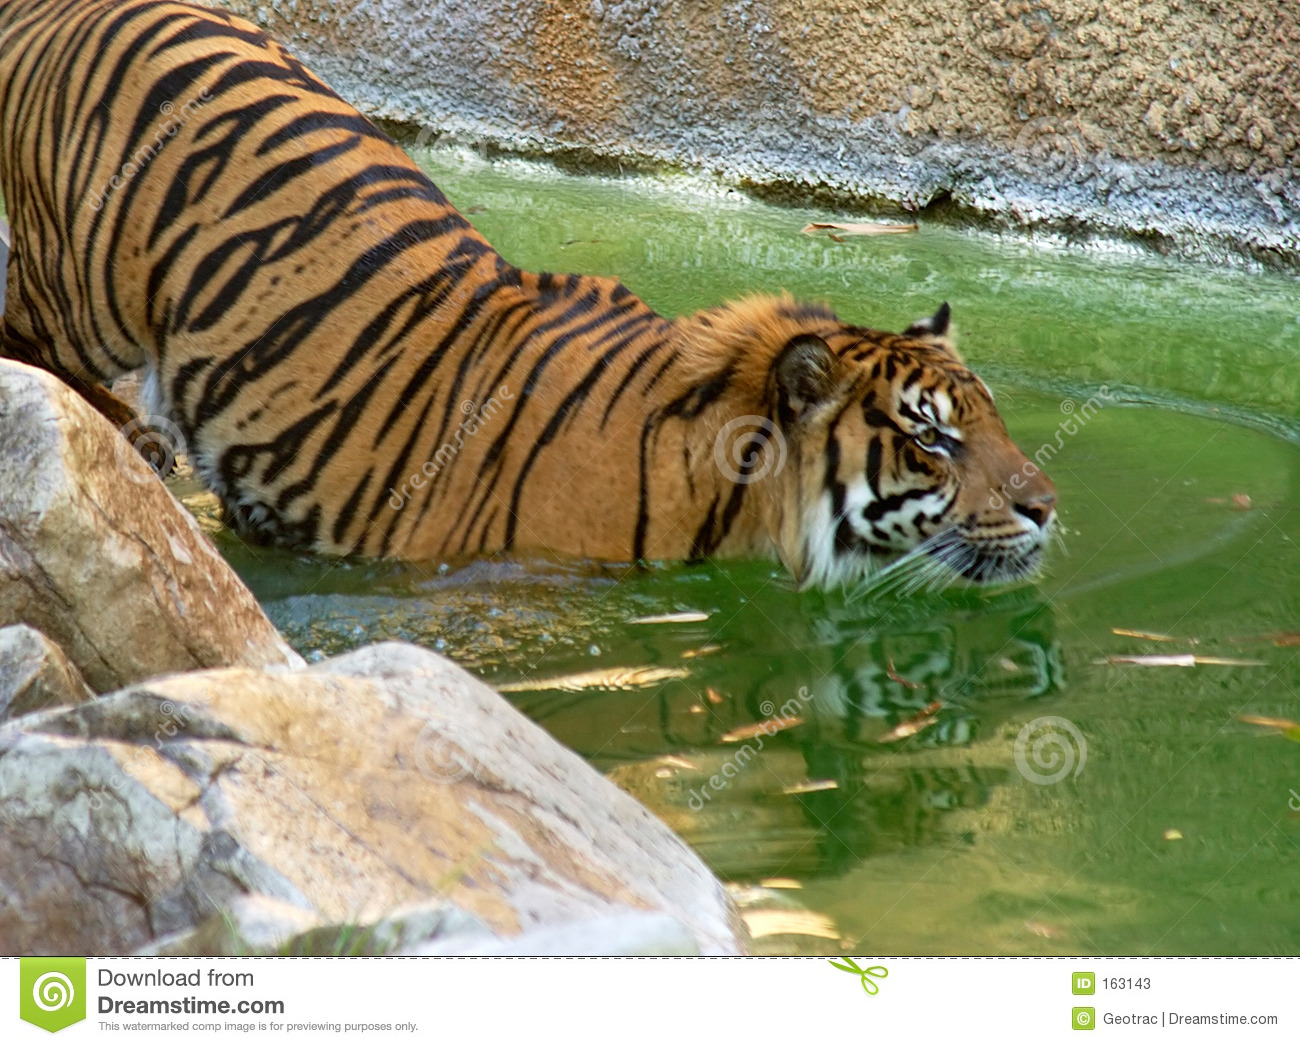 Tiger going for a swim to cool off